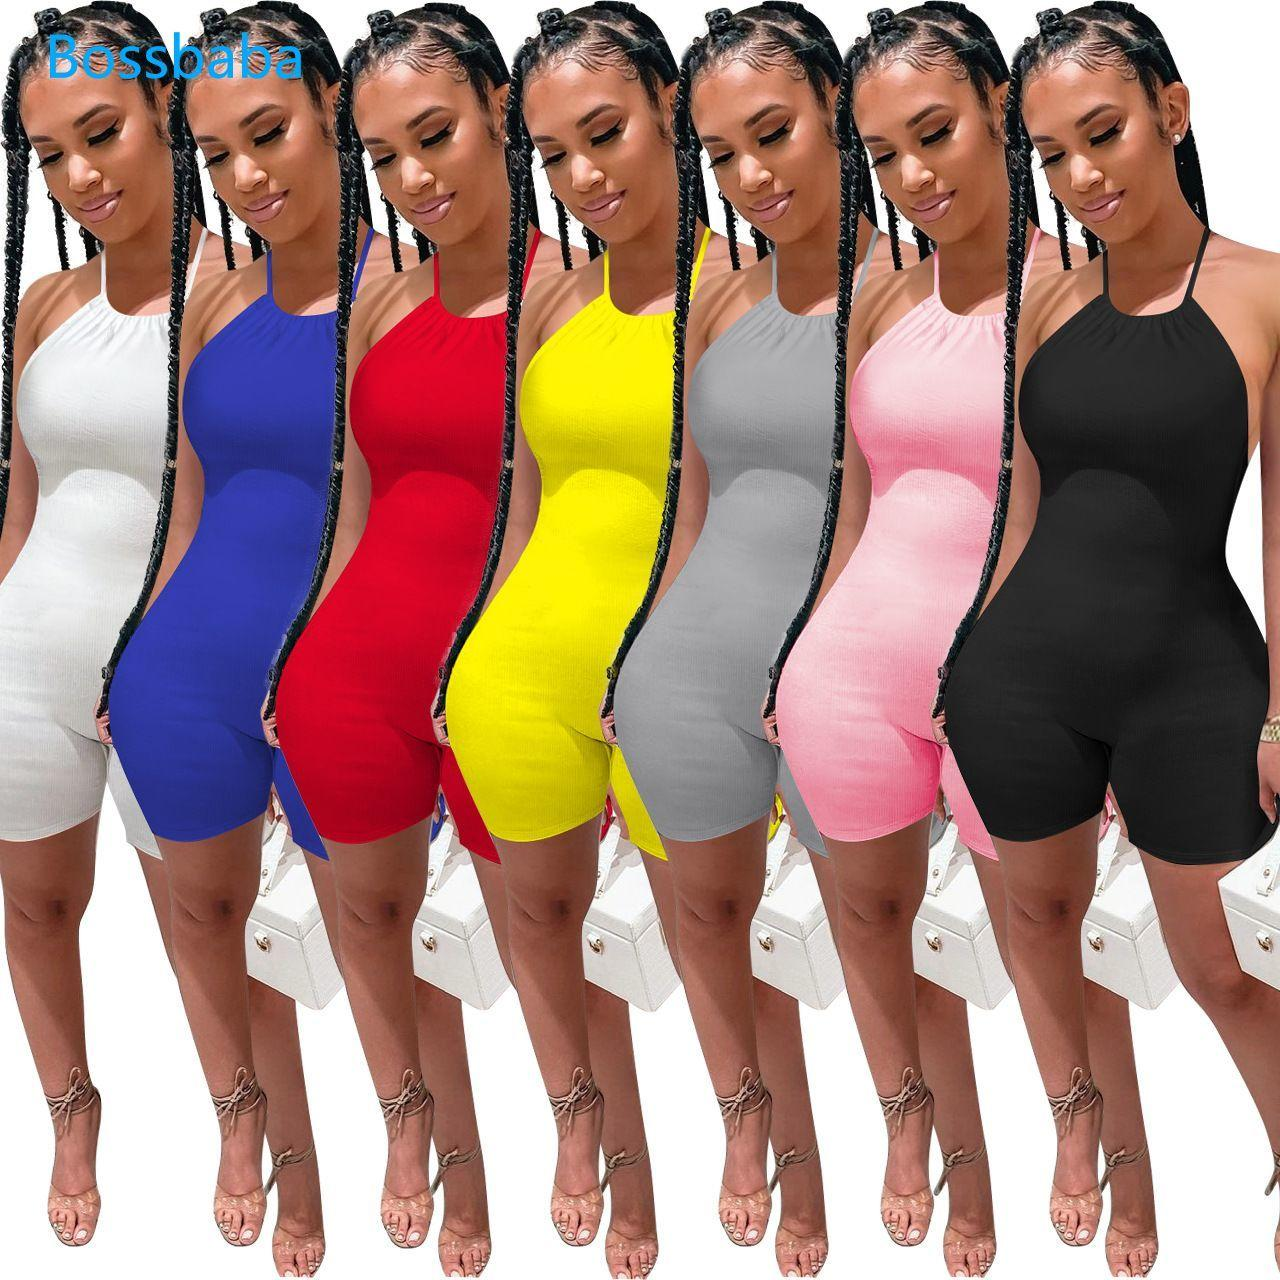 Women Jumpsuits Designer U-neck Summer Style Hanging Neck Shorts Pants Fashion Strapping Rib Open Back Sexy Slim Rompers 835